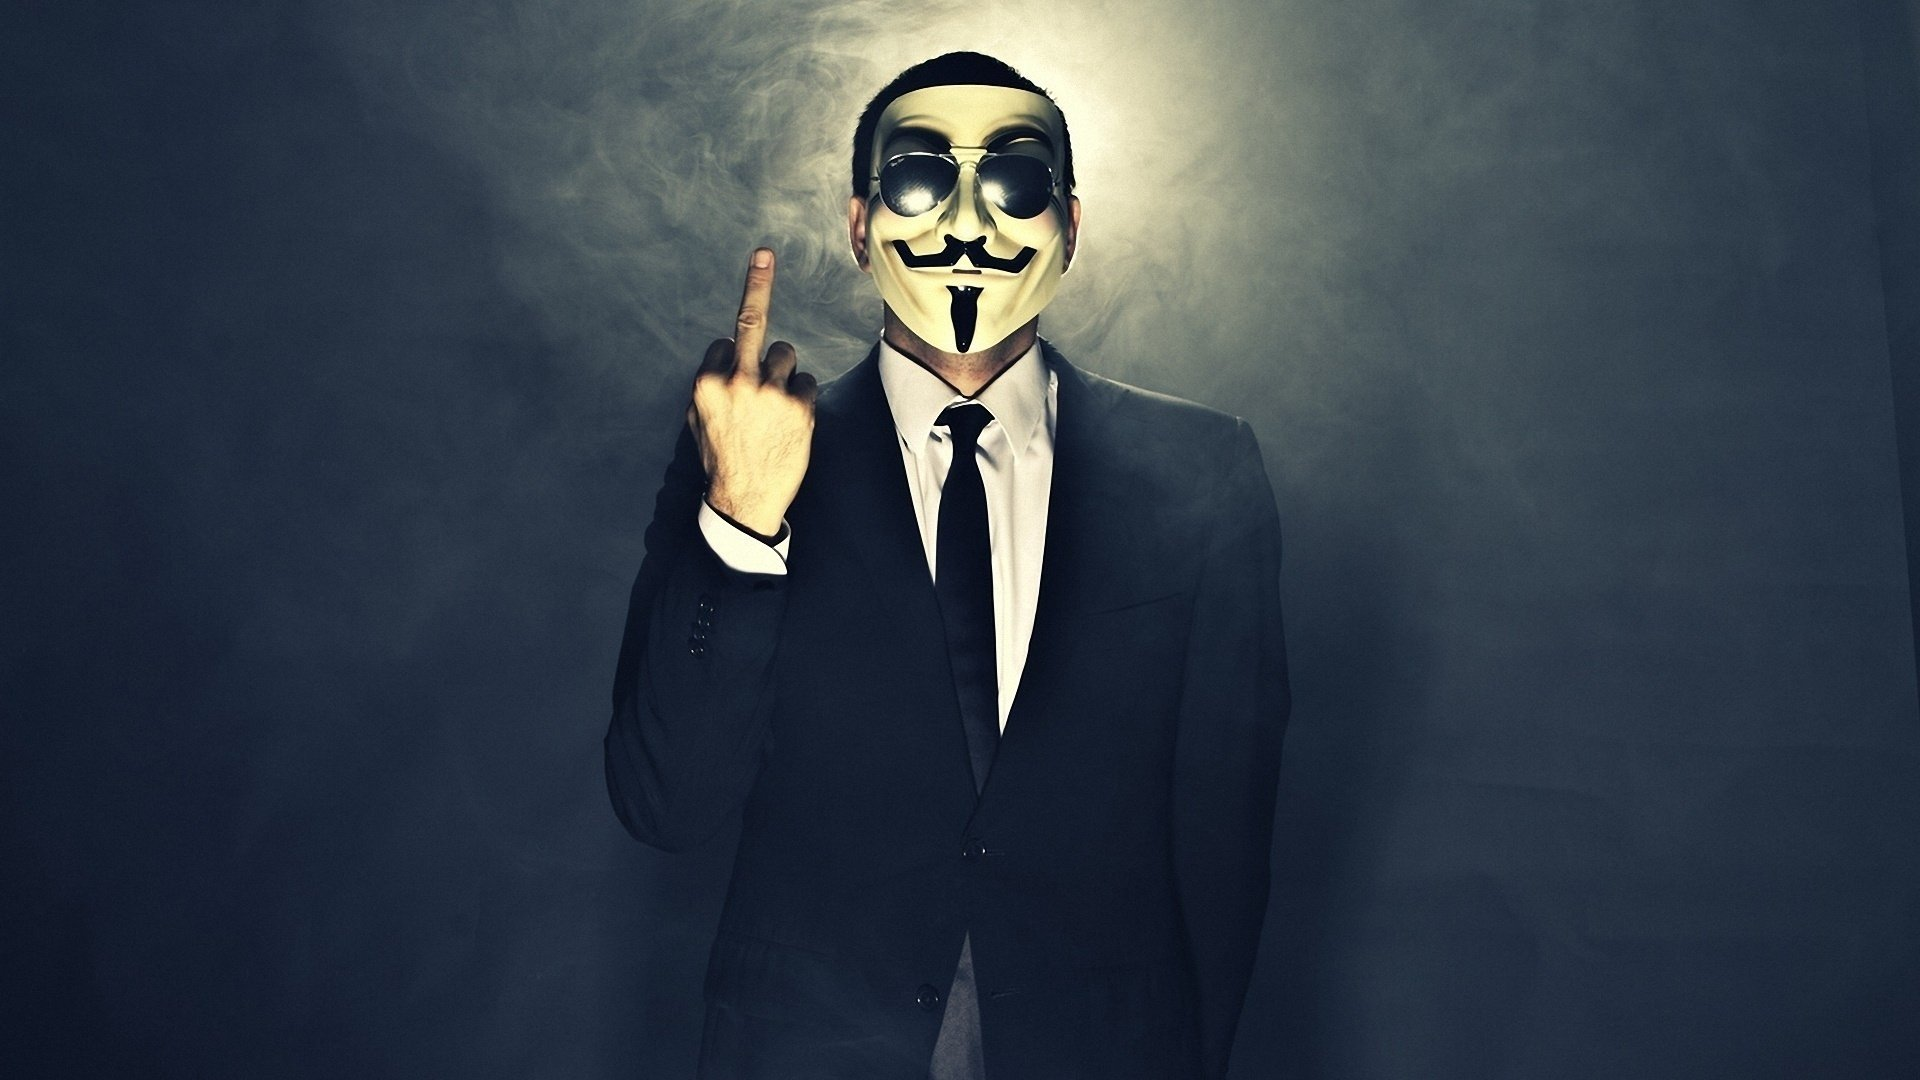 Anonymous wallpapers 1920x1080 Full HD (1080p) desktop backgrounds